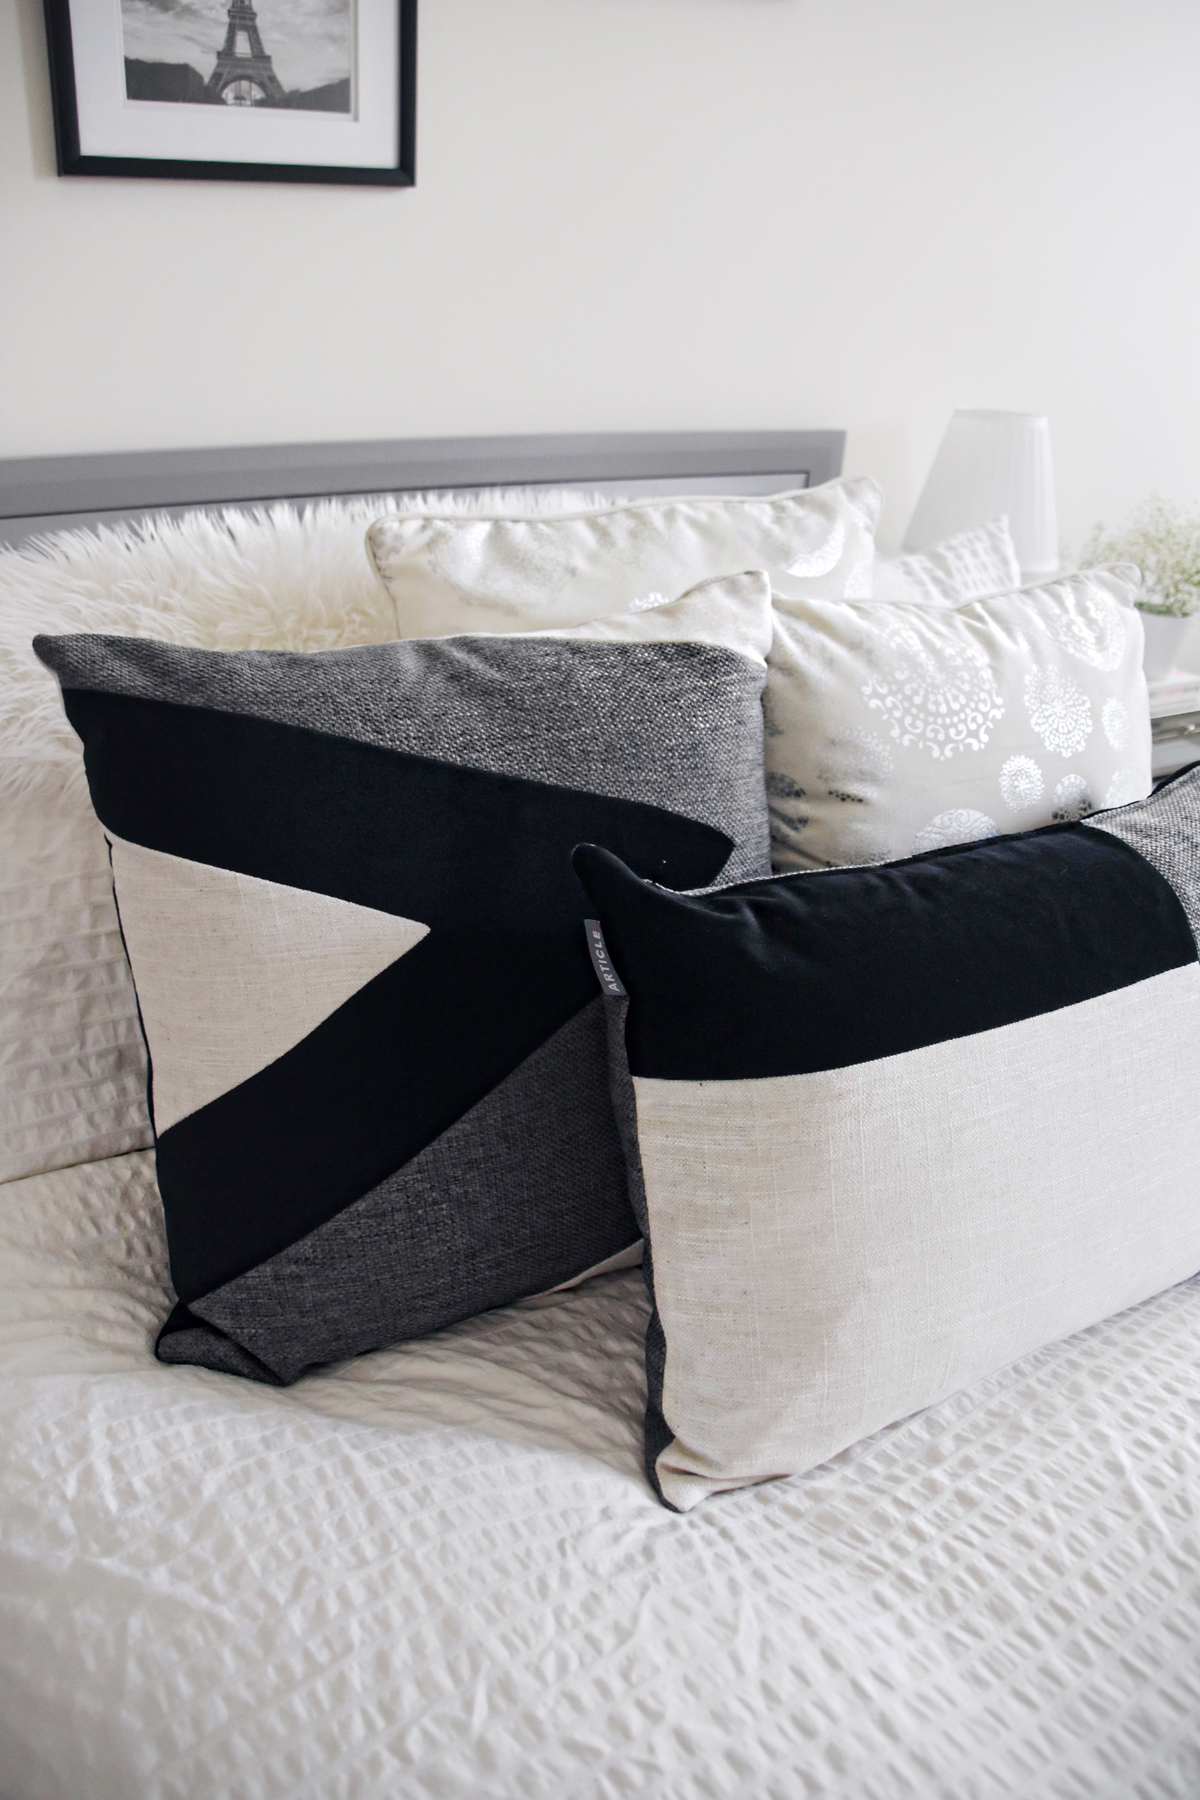 Bed room decoration with Article Velu pillow collection